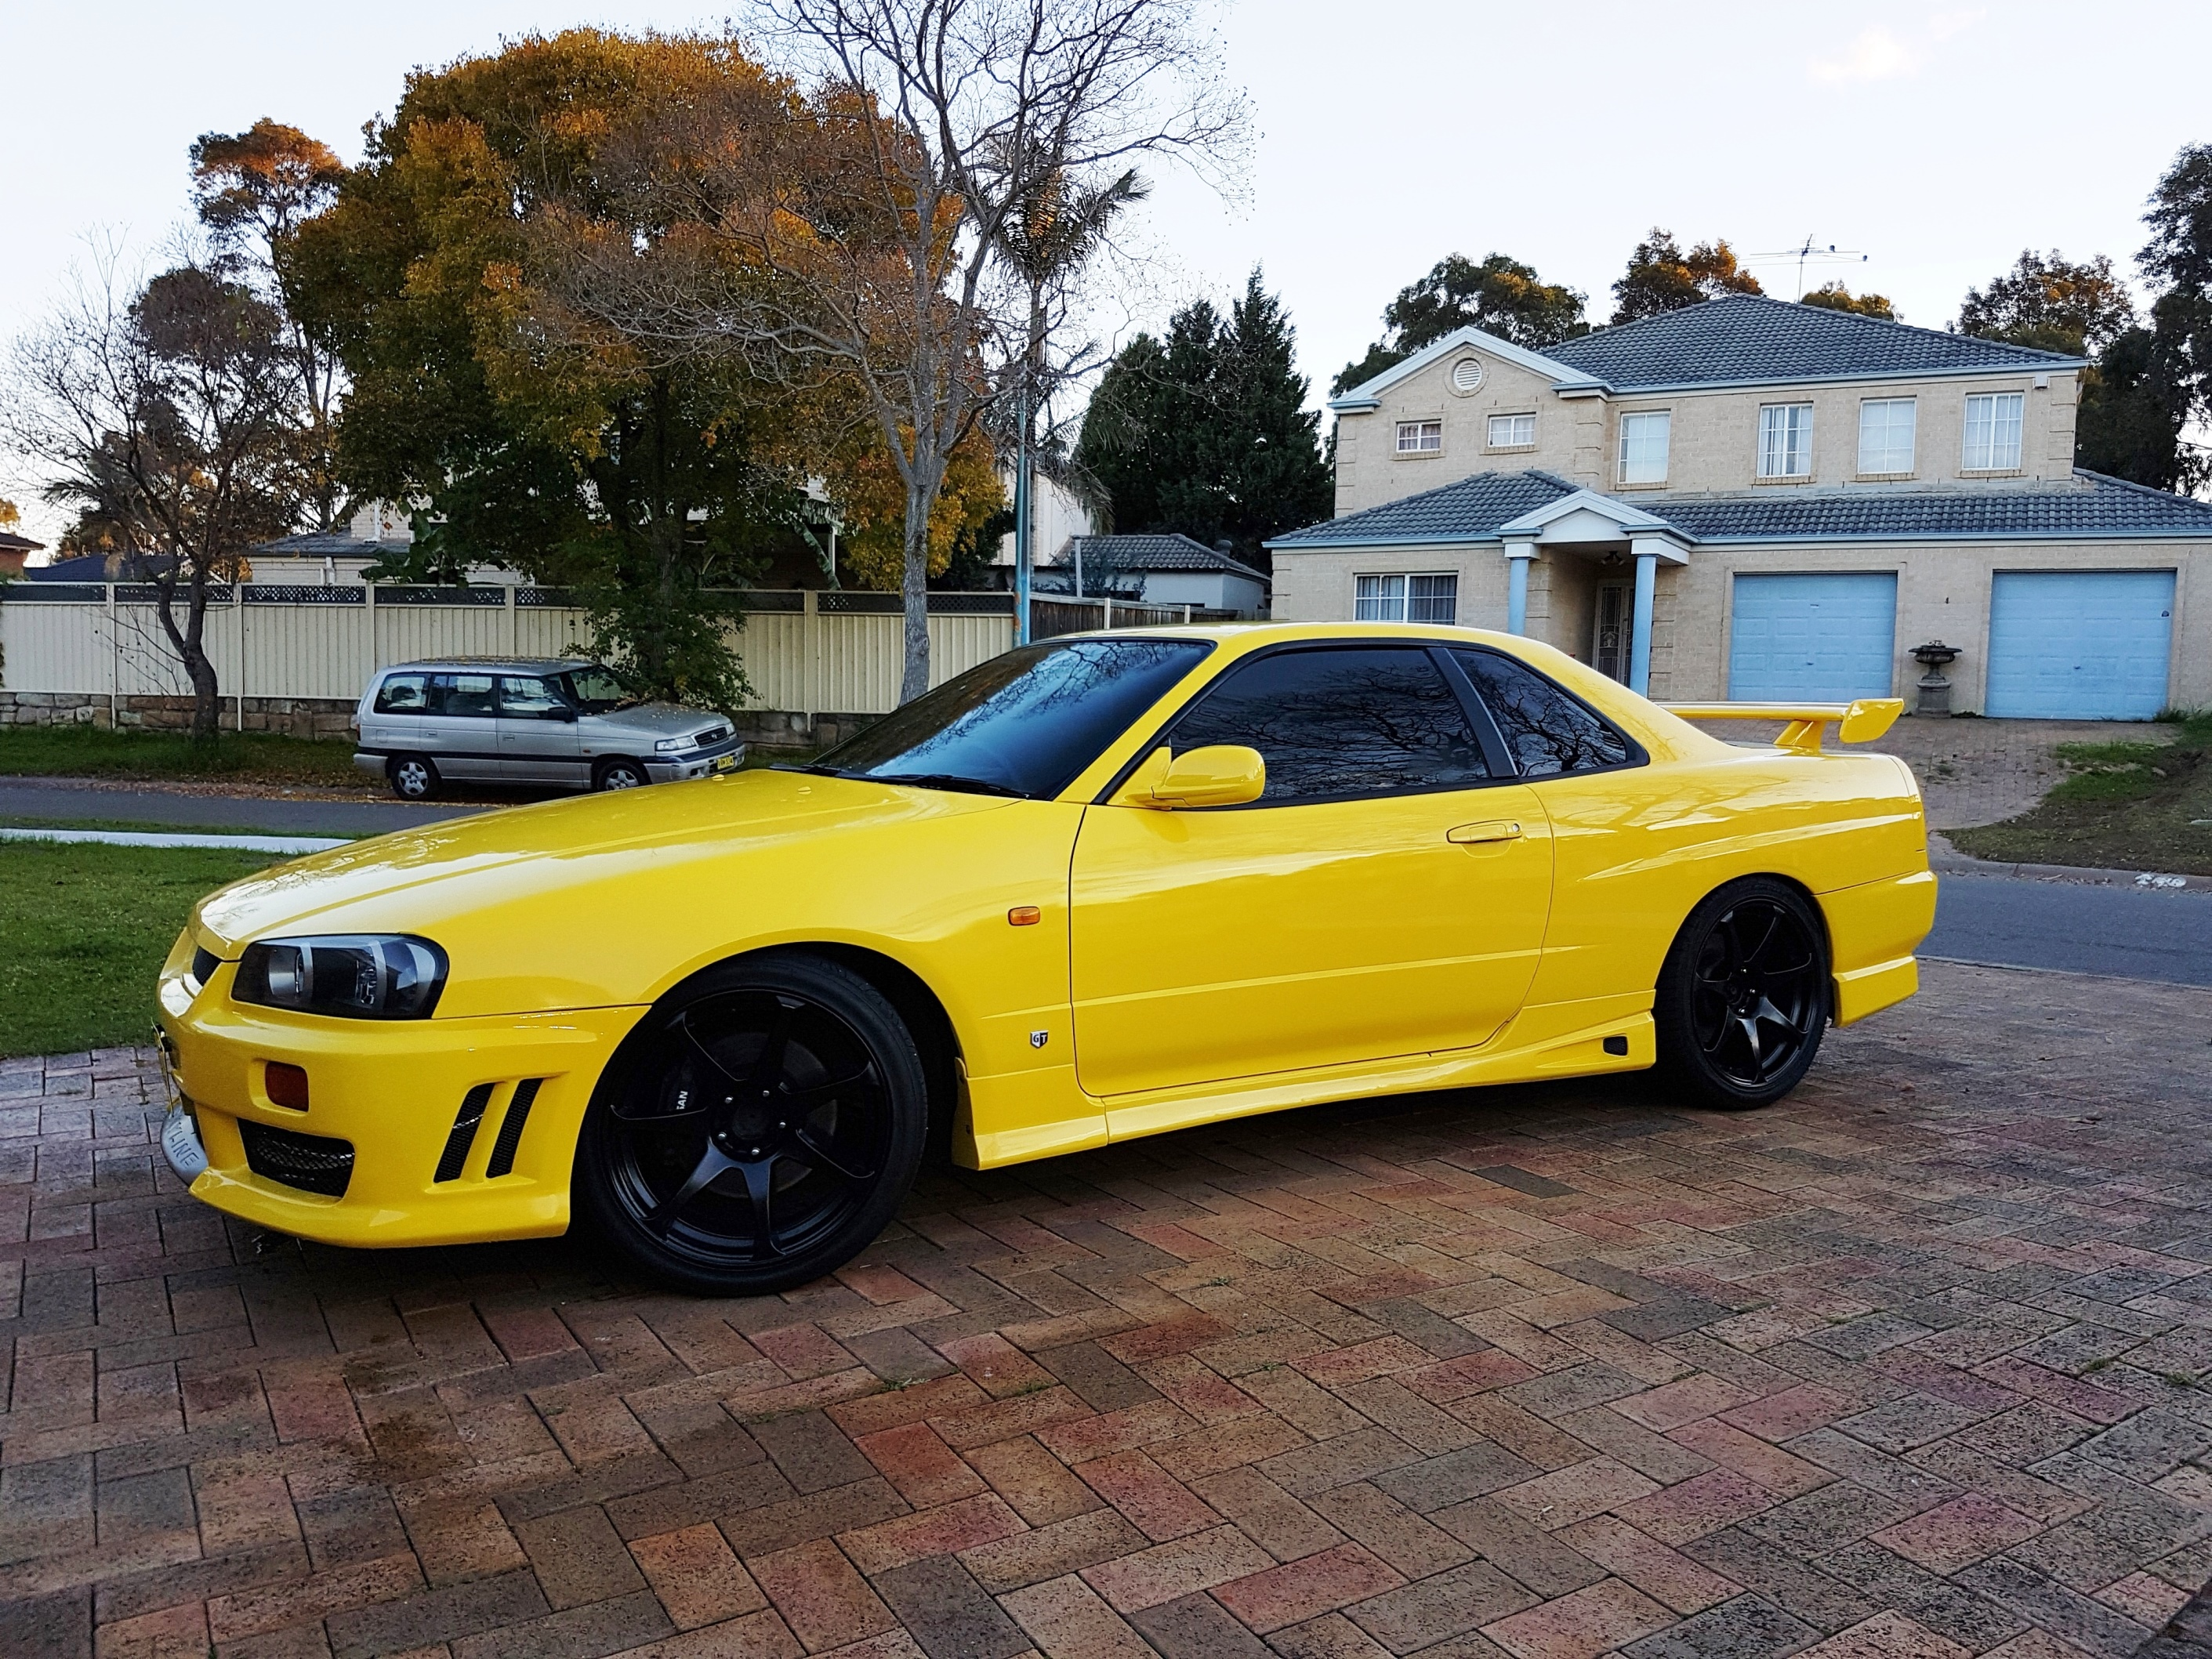 nissan skyline r34 gt t for sale private whole cars. Black Bedroom Furniture Sets. Home Design Ideas